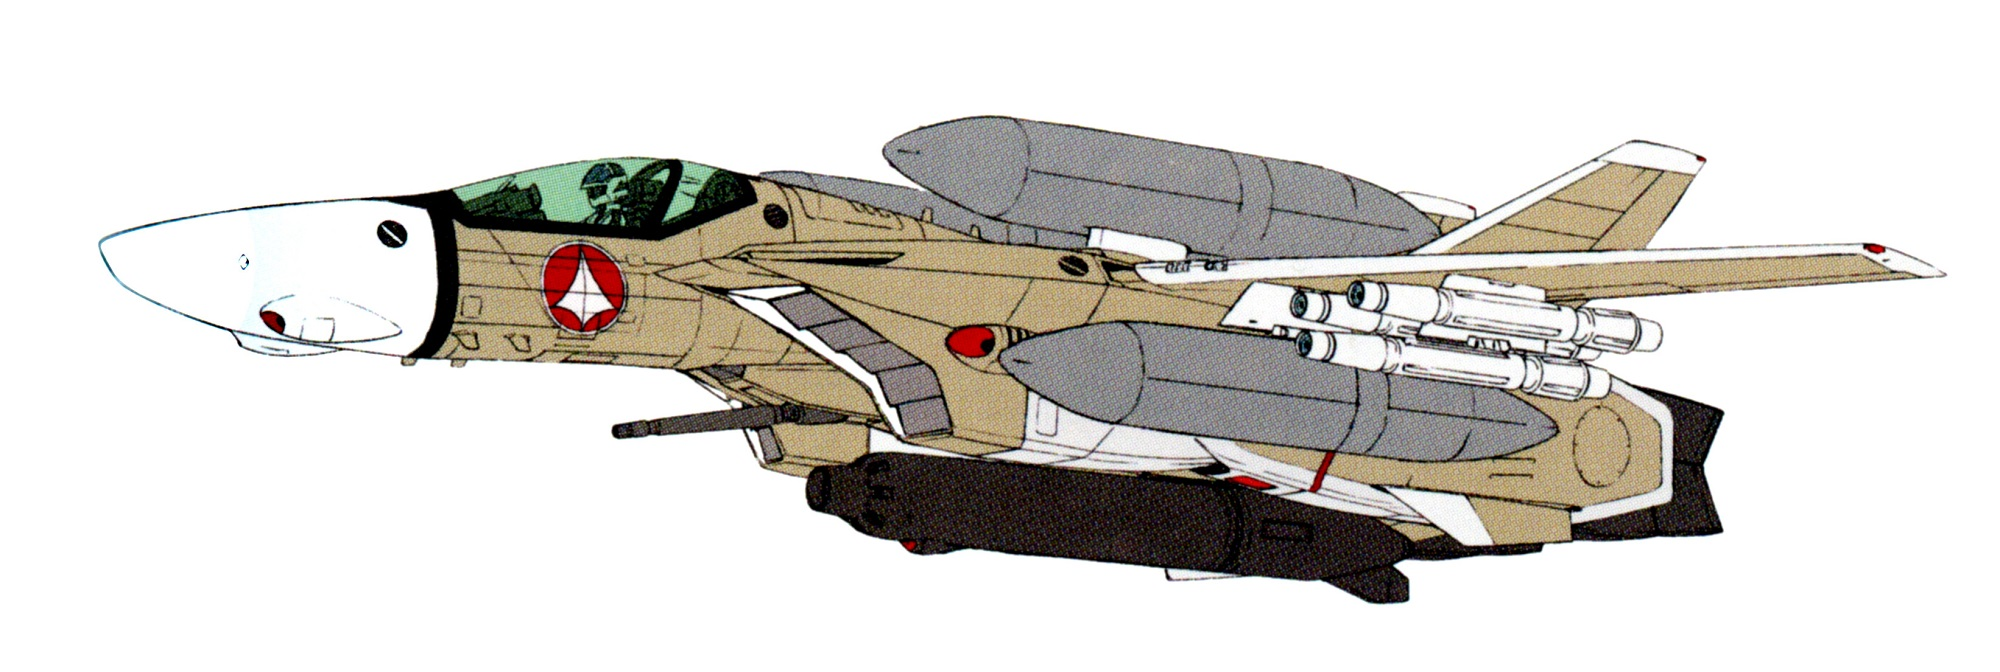 VF-1A external fuel tank